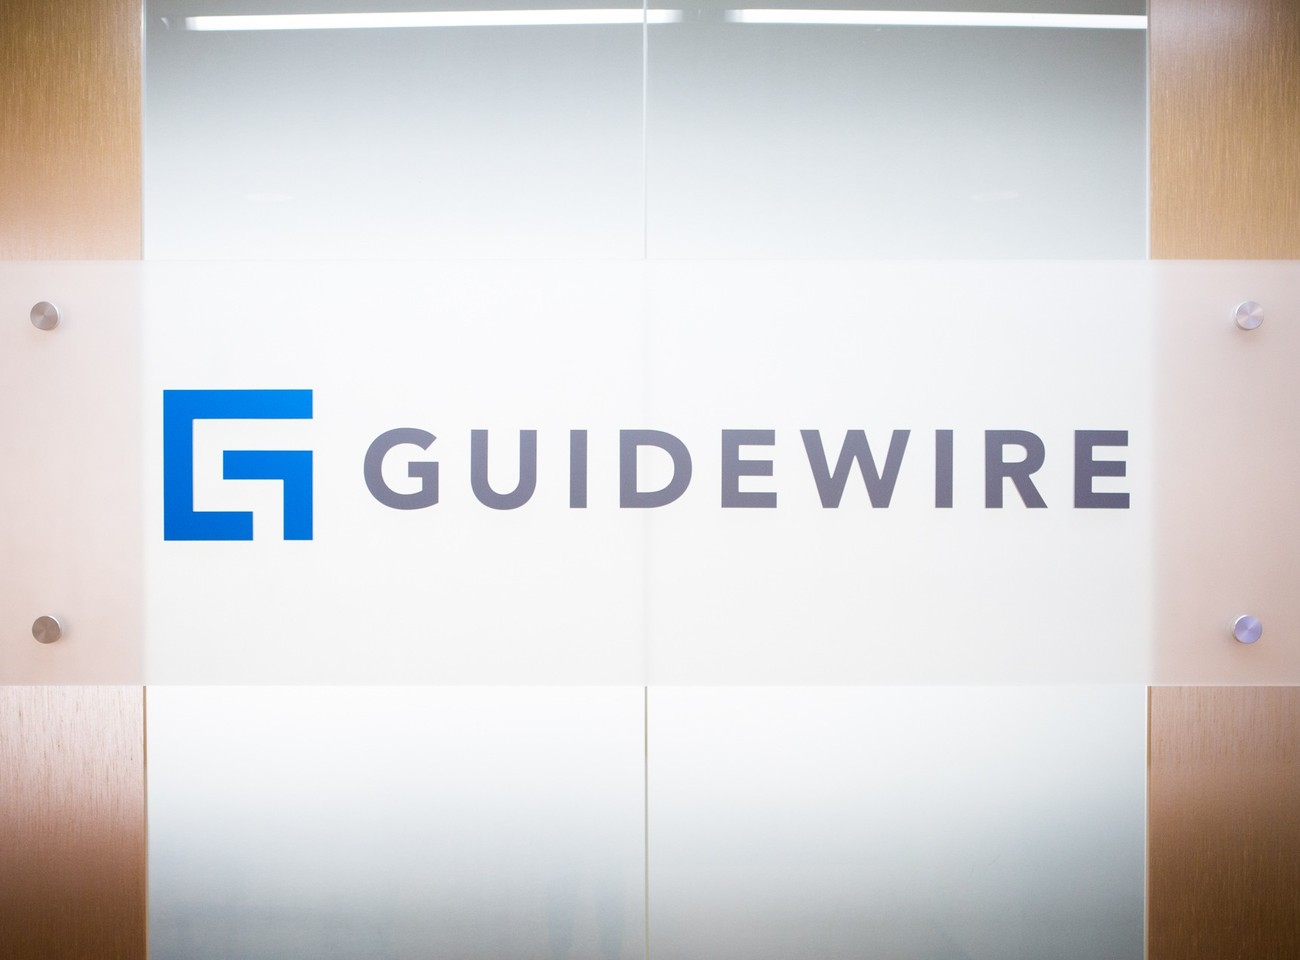 Guidewire Careers